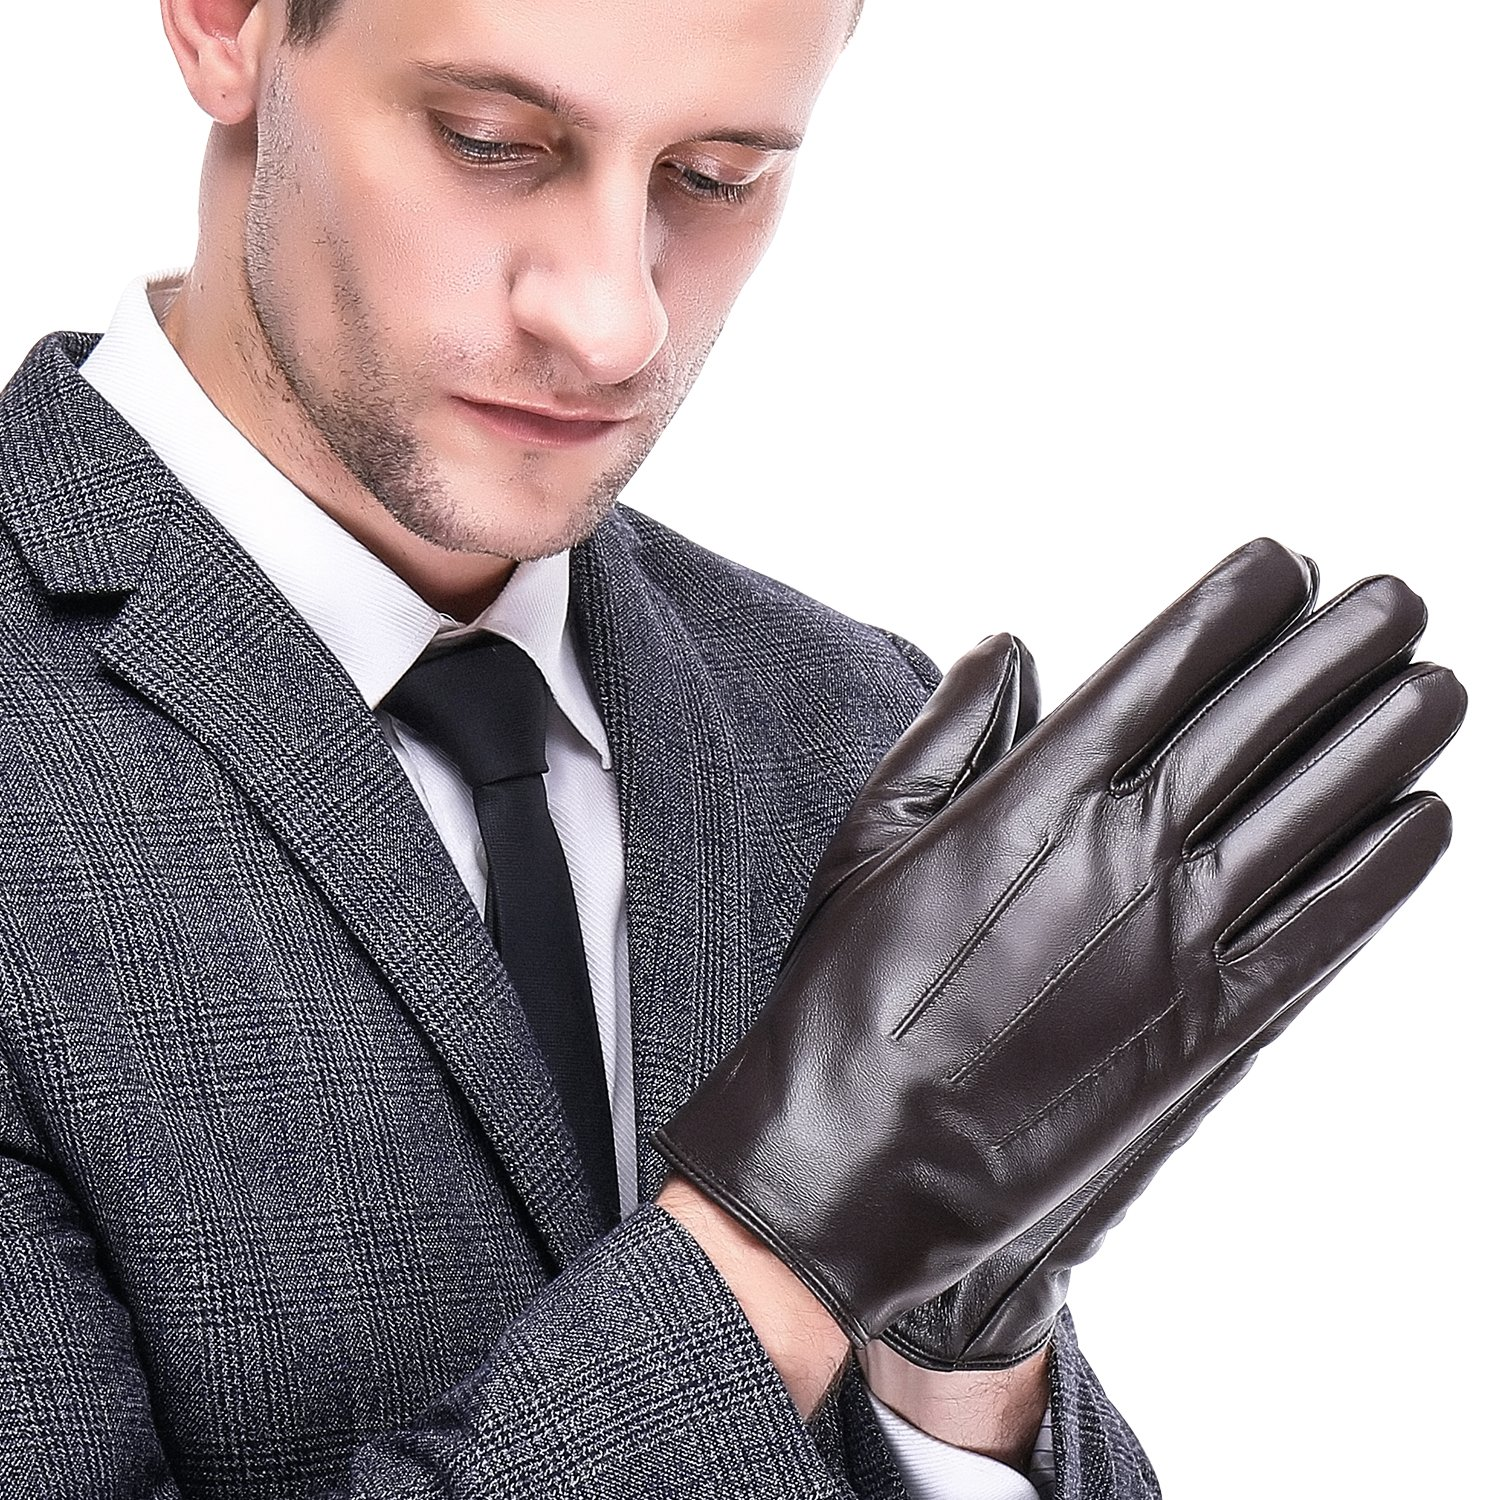 Leather Gloves for men,Anccion Best Touchscreen Winter Warm Italian Nappa Geniune Leather Gloves for Men's Texting Driving Cashmere/fleece Lining (Large, Brown)